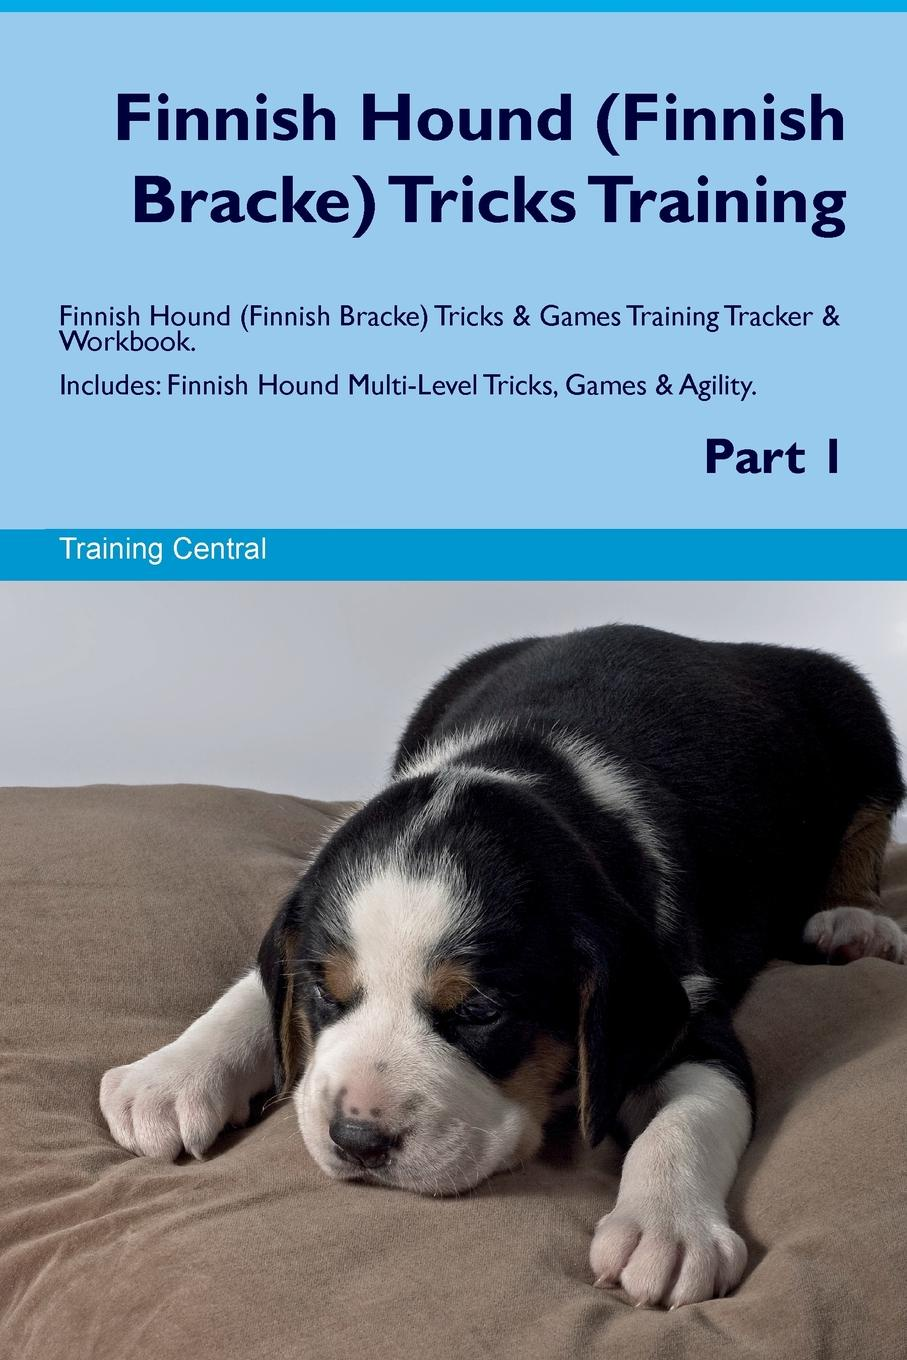 Training Central Finnish Hound (Finnish Bracke) Tricks Training Finnish Hound (Finnish Bracke) Tricks & Games Training Tracker & Workbook. Includes. Finnish Hound Multi-Level Tricks, Games & Agility. Part 1 henkikirjoitusta seka muuttamista seurakunnasta toiseen ja papintodistuksia koskevat asetukset finnish edition